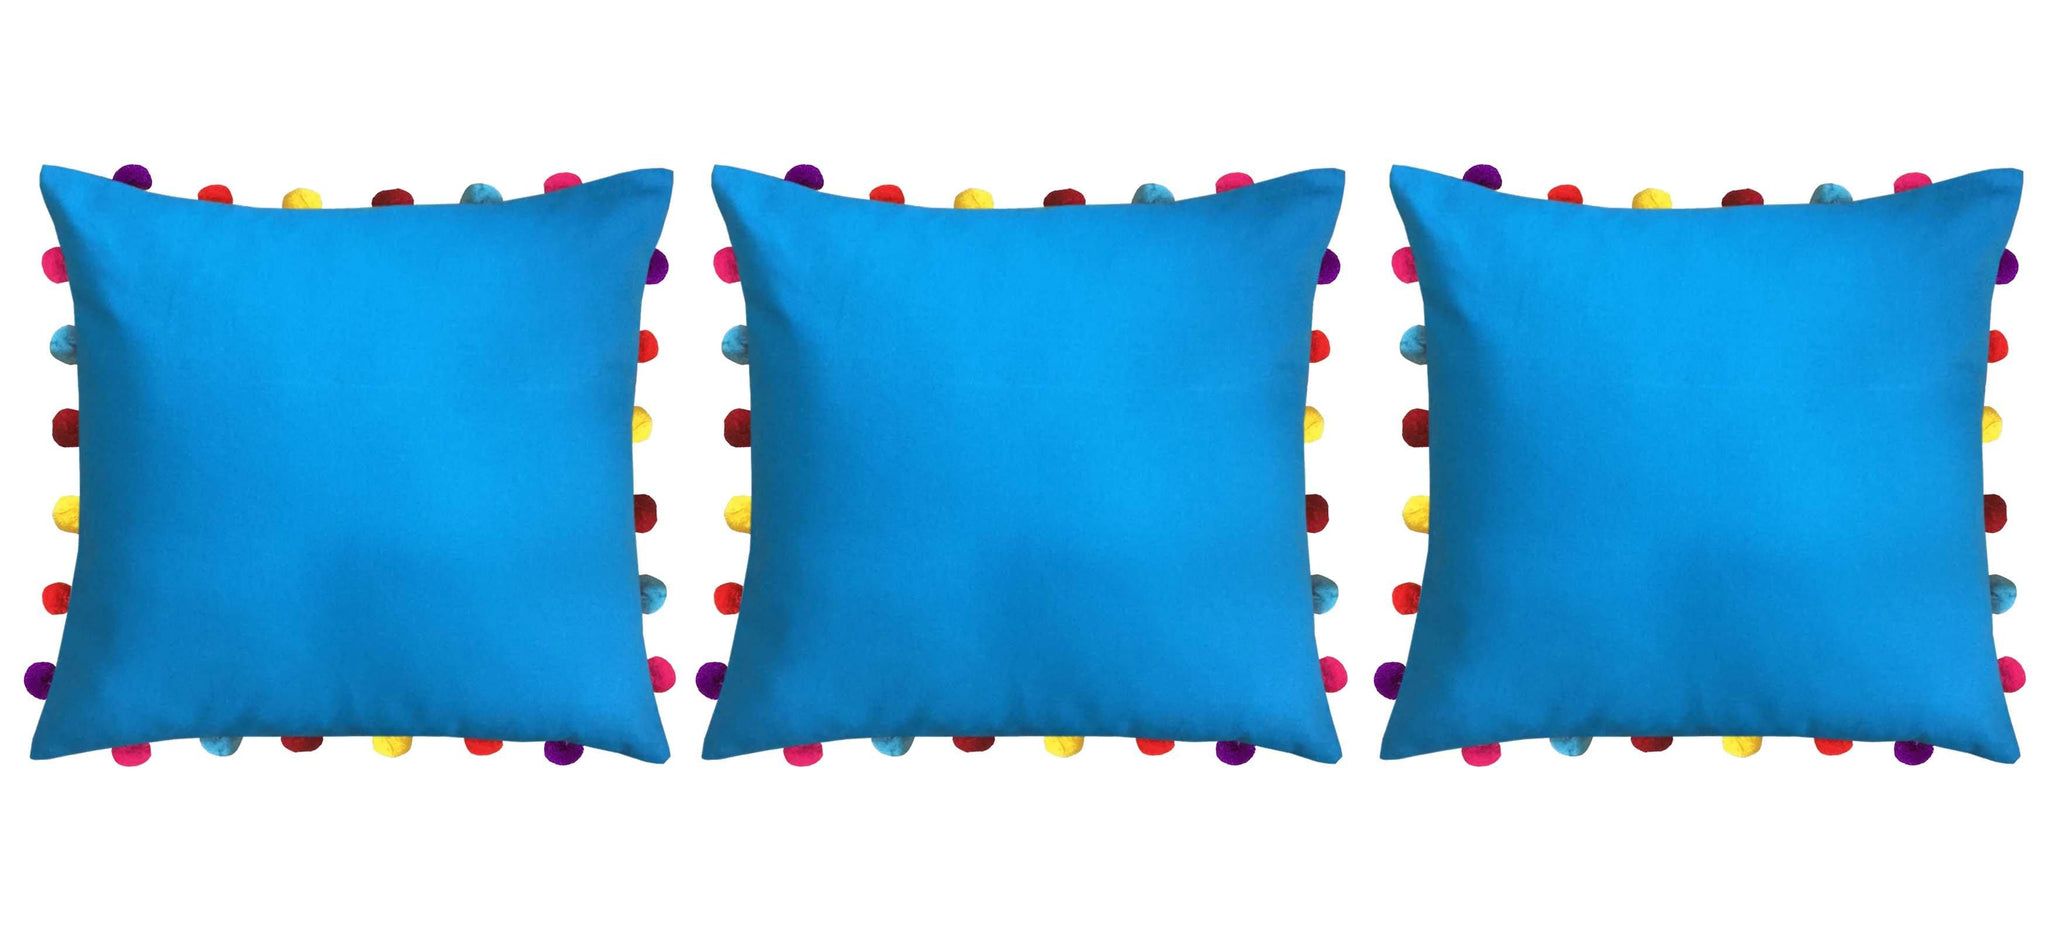 "Lushomes Bachelor Button Cushion Cover with Colorful Pom pom (3 pcs, 18 x 18"") - Lushomes"